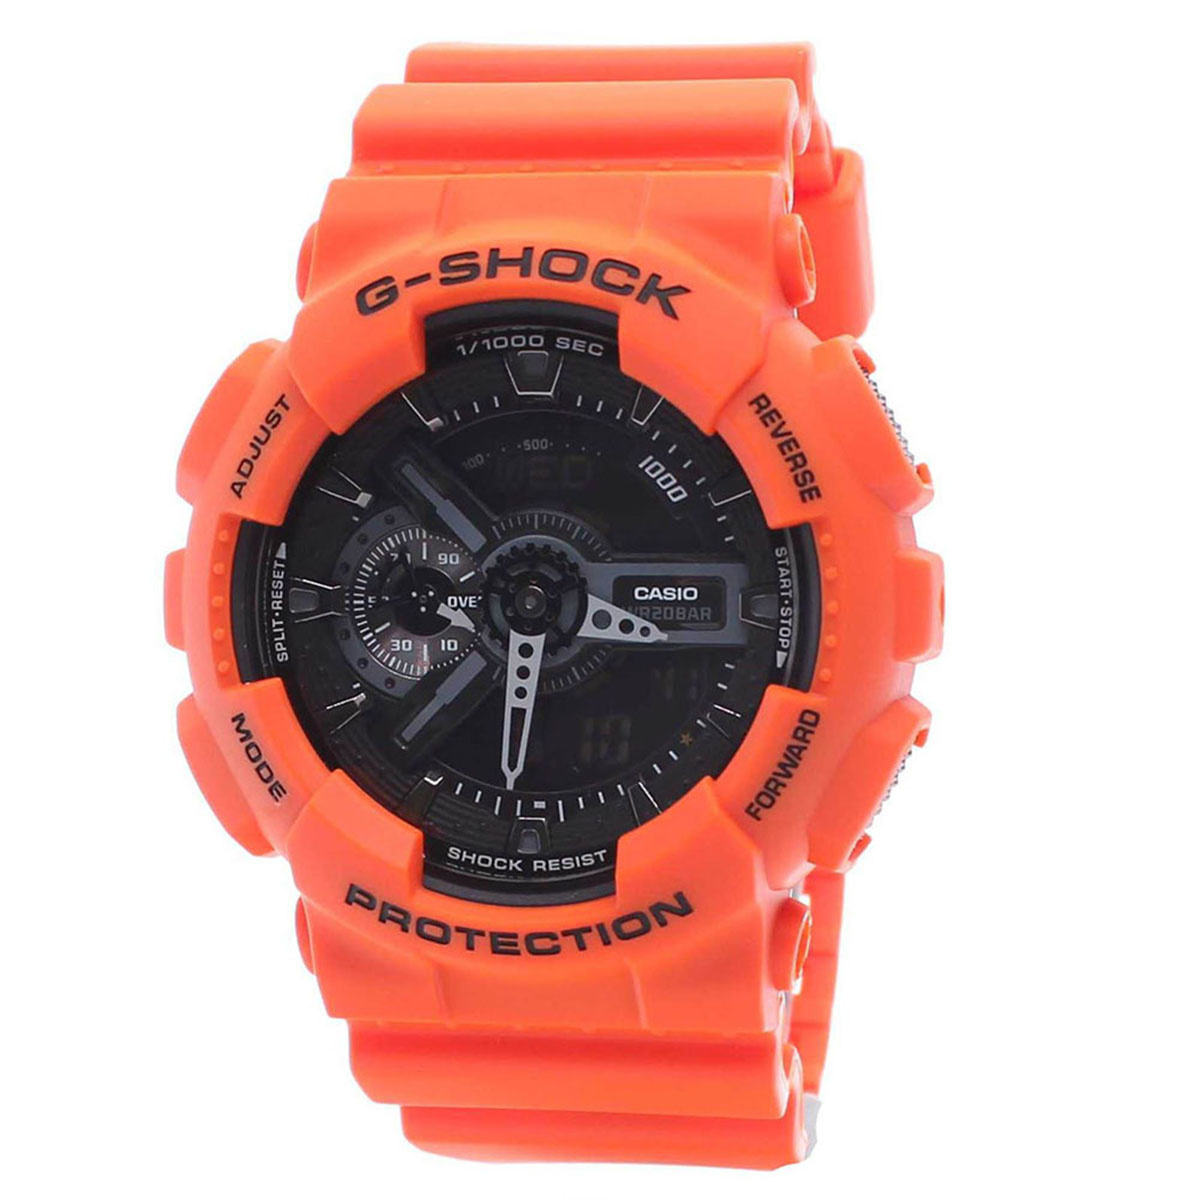 【クリックで詳細表示】CASIOCasio Mens G SHOCK RESCUE ORANGE SERIES Watch BNIB + Warranty GA-110MR-4A